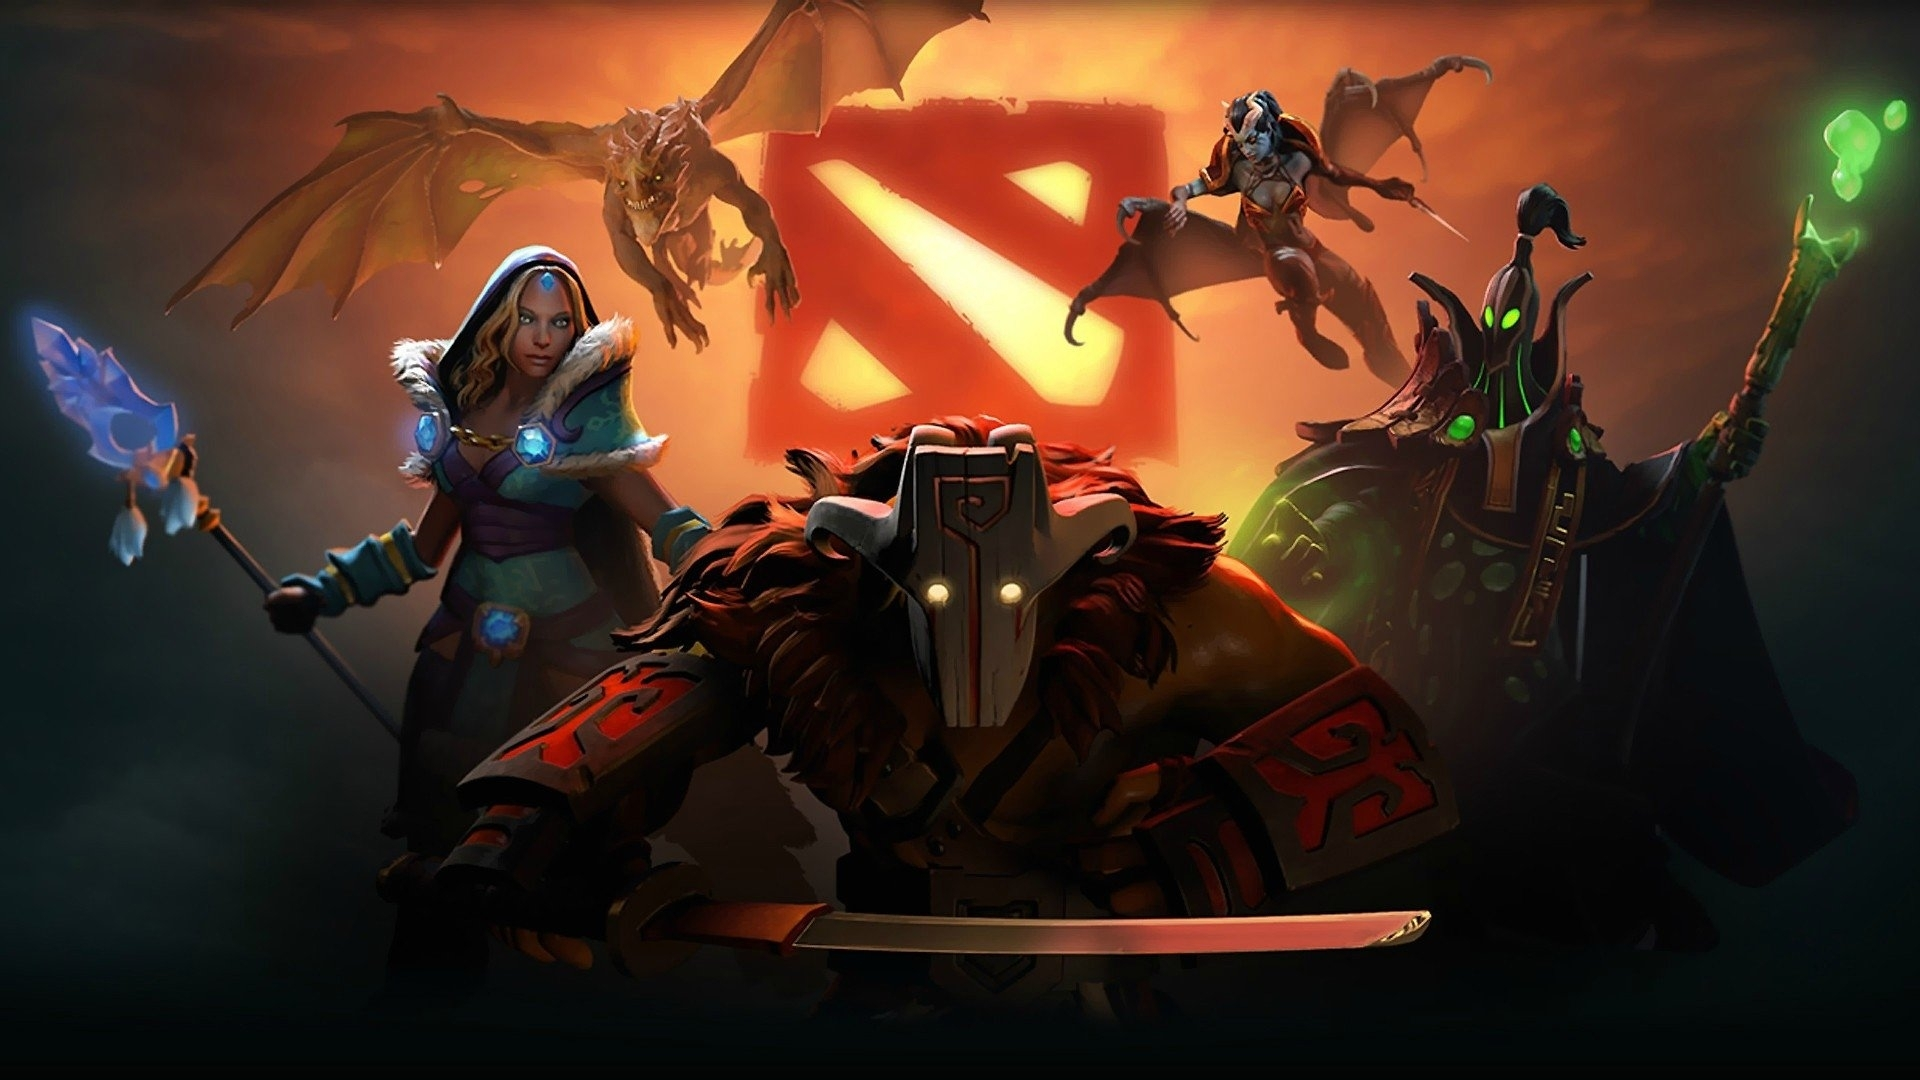 1477 dota 2 hd wallpapers | background images - wallpaper abyss